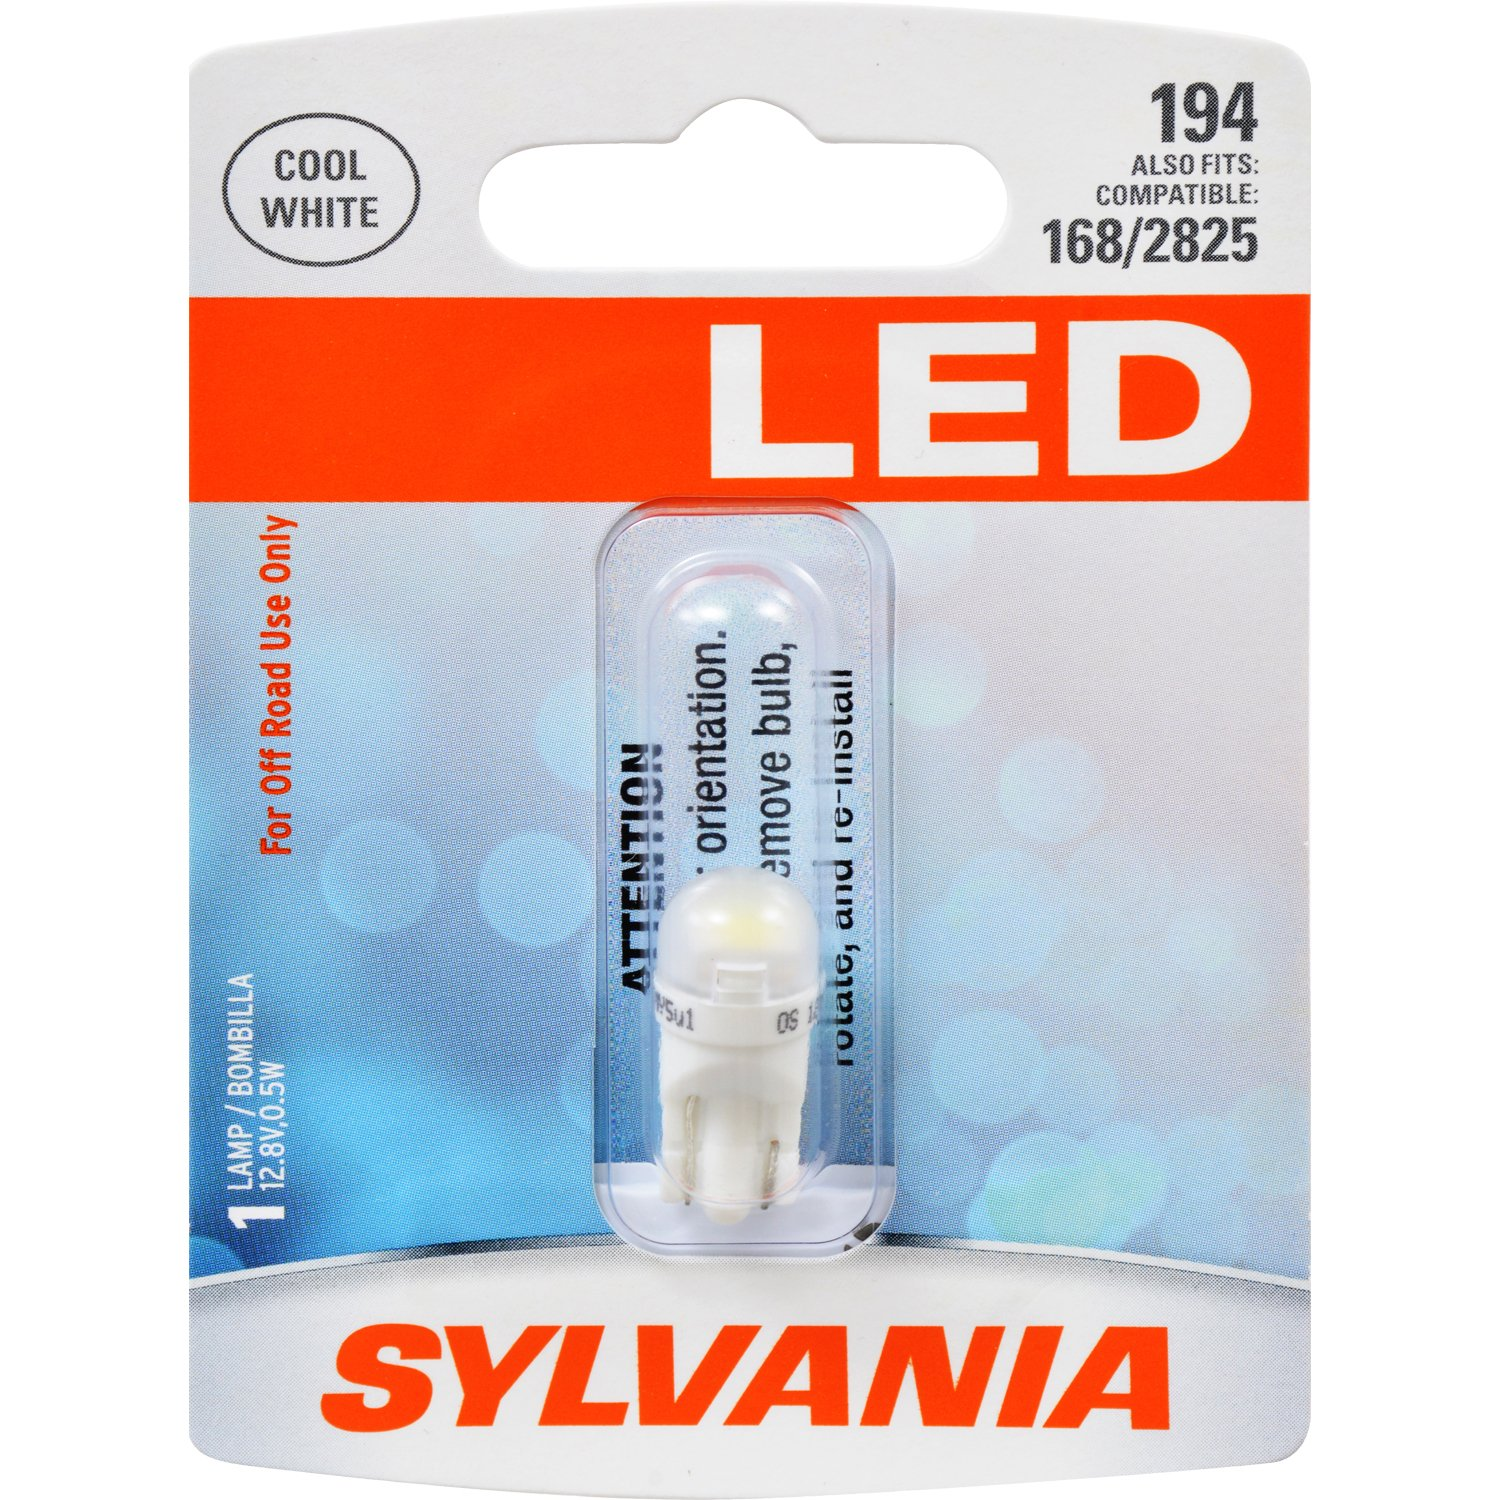 DE3175 31mm Festoon LED White Mini Bulb Ideal for Interior Lighting Contains 1 Bulb Dome Bright LED Bulb Map Cargo and License Plate SYLVANIA